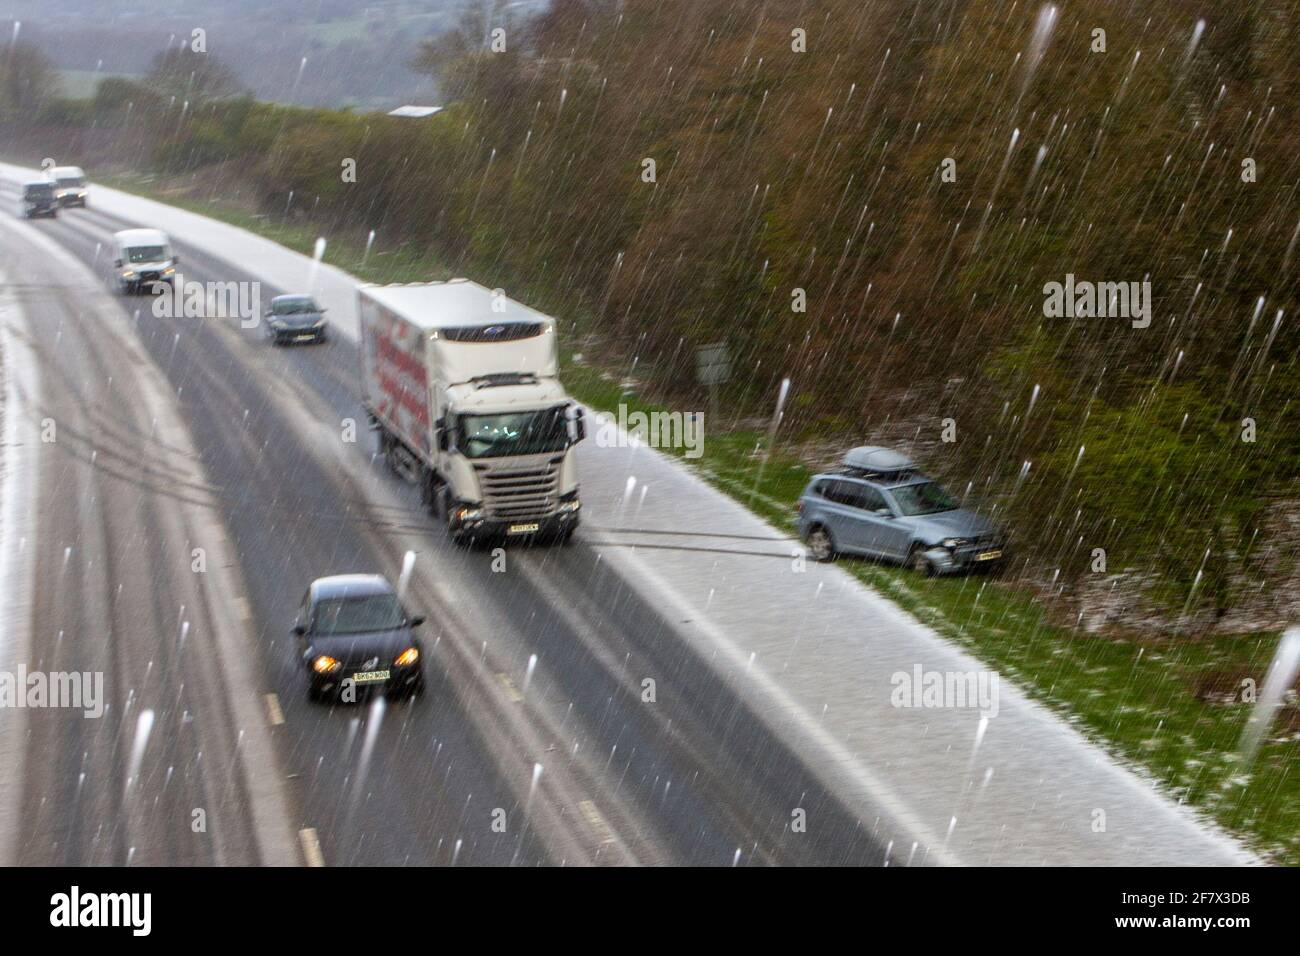 Chorley Lancashire. 10th April 2021 UK Weather;  Motorway mayhem as freak hail stone shower makes driving tricky with a series of collisions in Chorley. BMW 4 wheel drive vehicles in separate incidents collide with the armcor on the M61 central reservation. Credit MediaWorldImages/AlamyLivenews Stock Photo